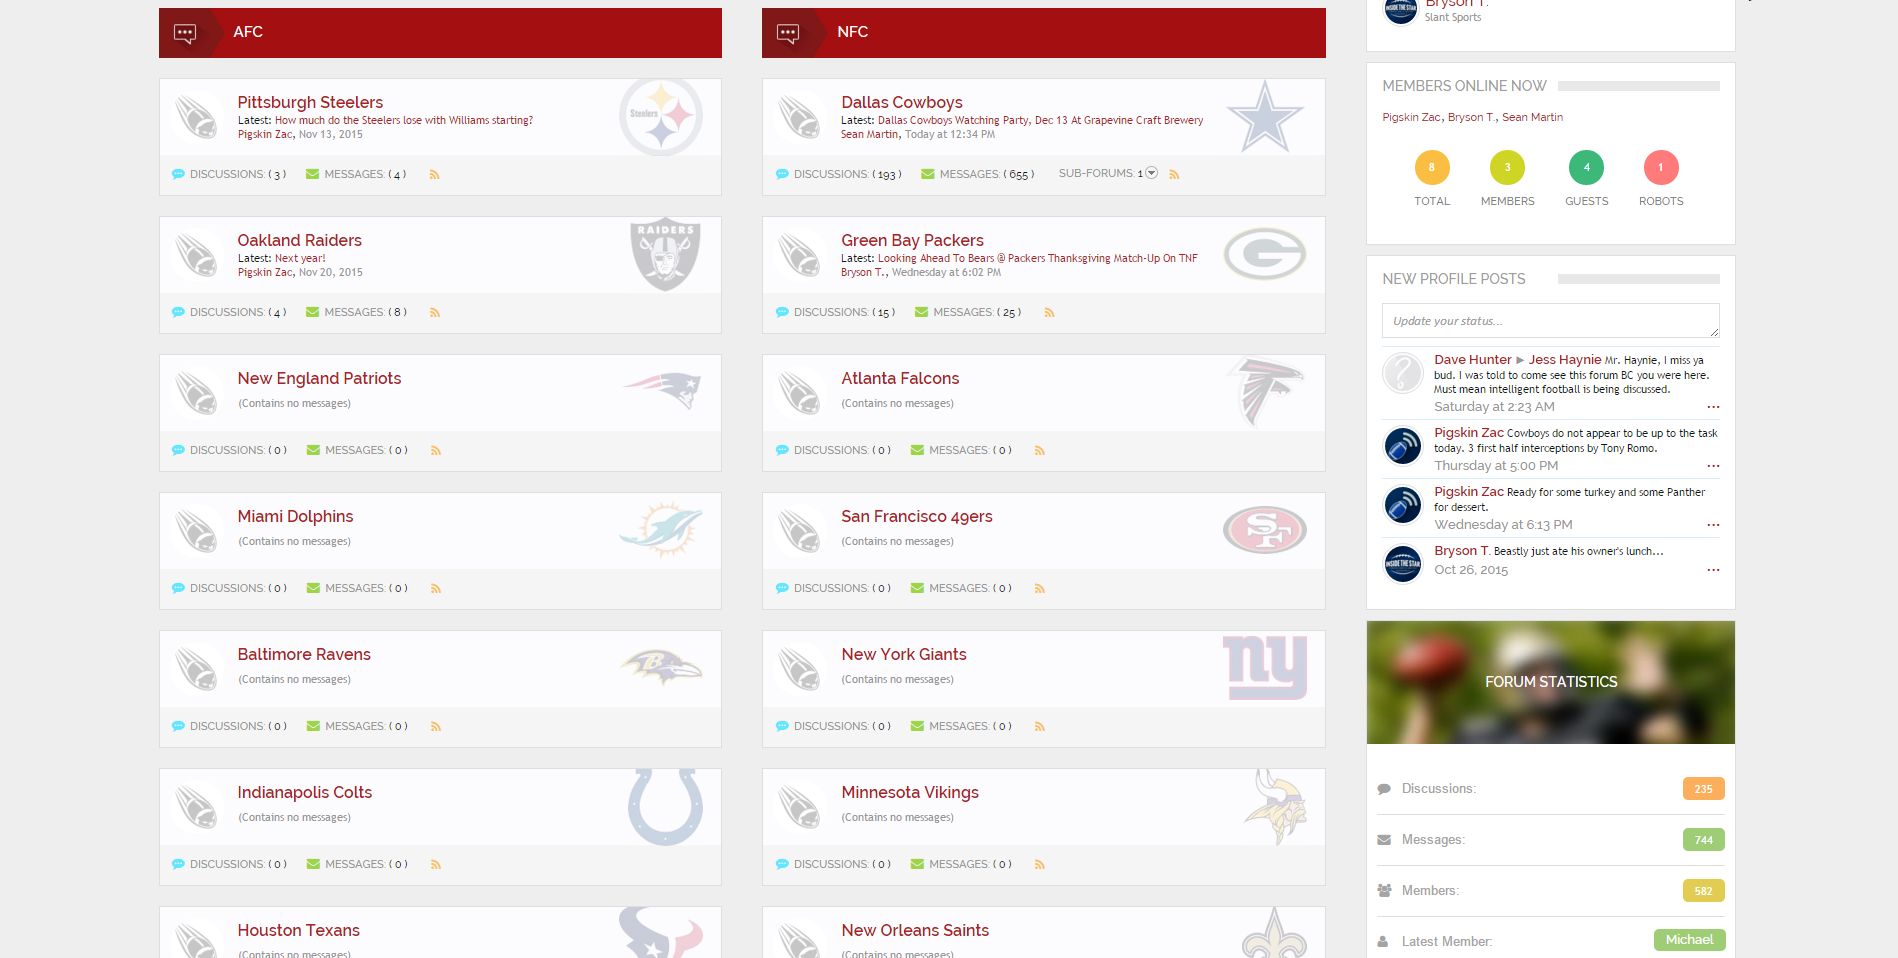 News & Notes - Introducing Pigskin Hub NFL Forums For Cowboys Discussion